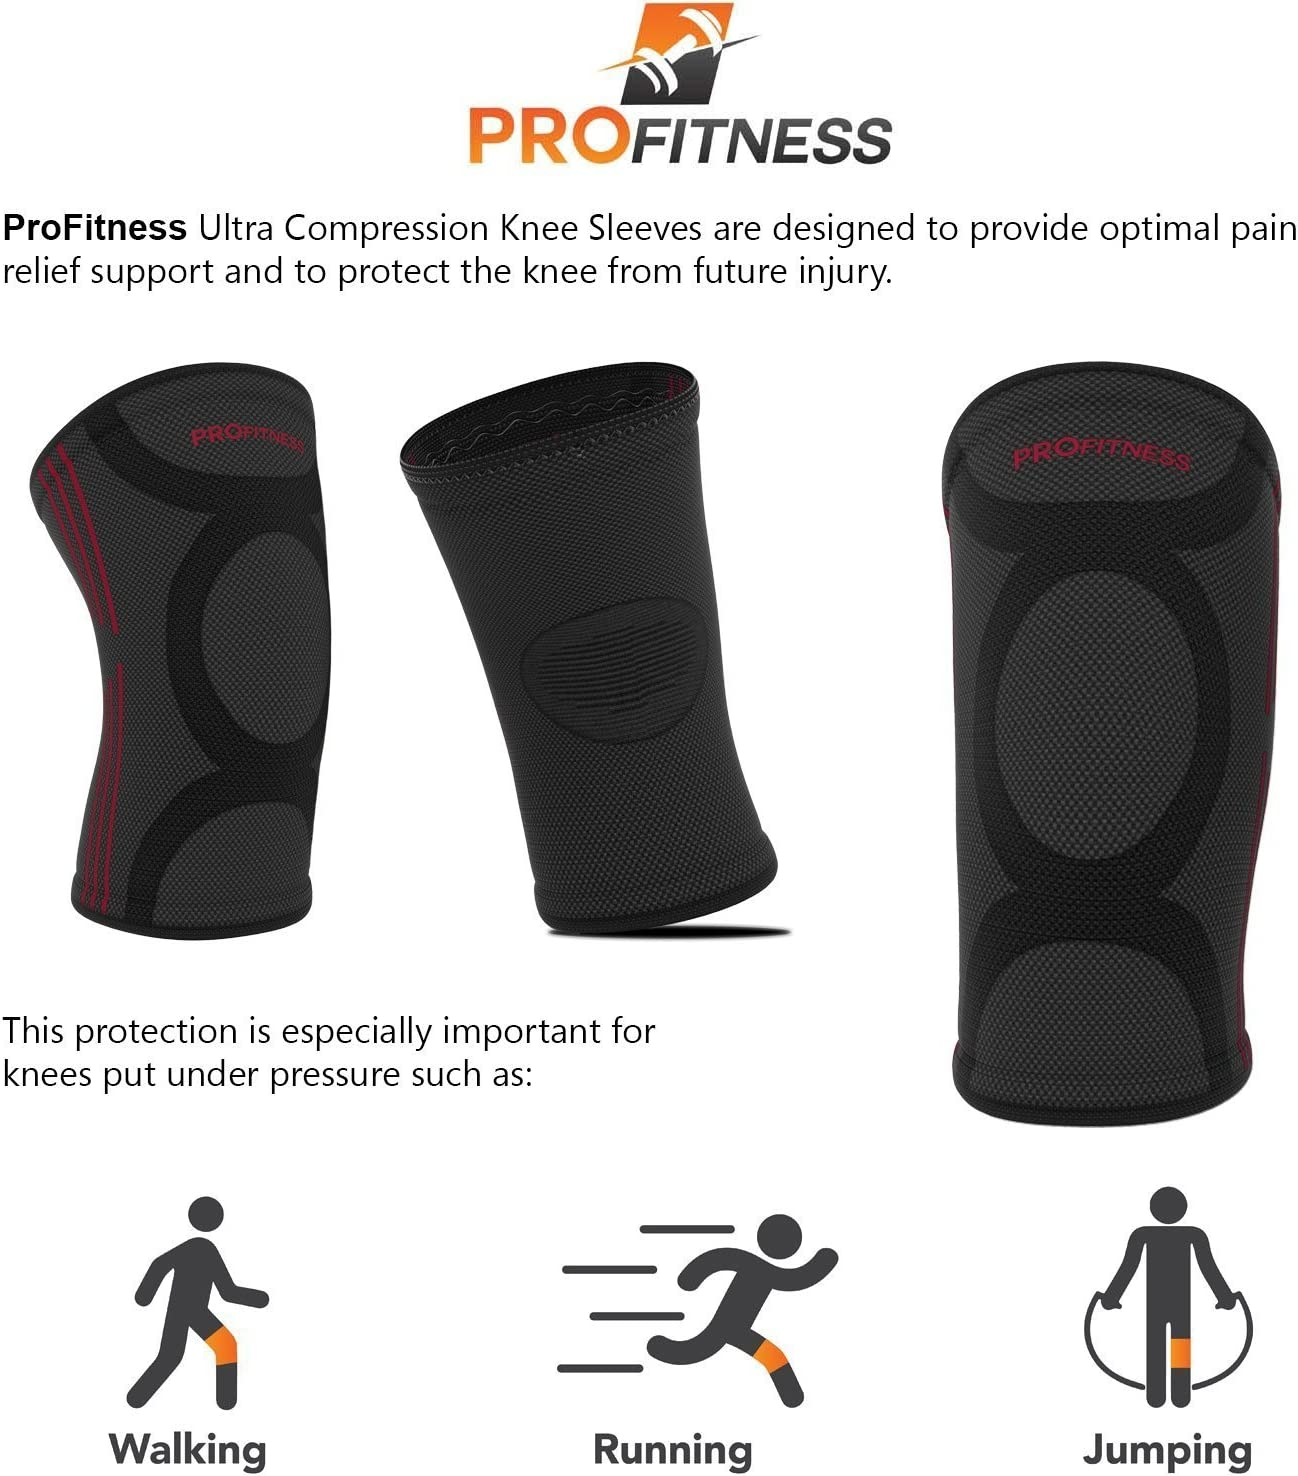 One Pair Surgery Recovery Knee Support for Joint Pain /& Arthritis Pain Relief ProFitness Knee Sleeves Effective Support for Running Arthritis Pain Pain Management